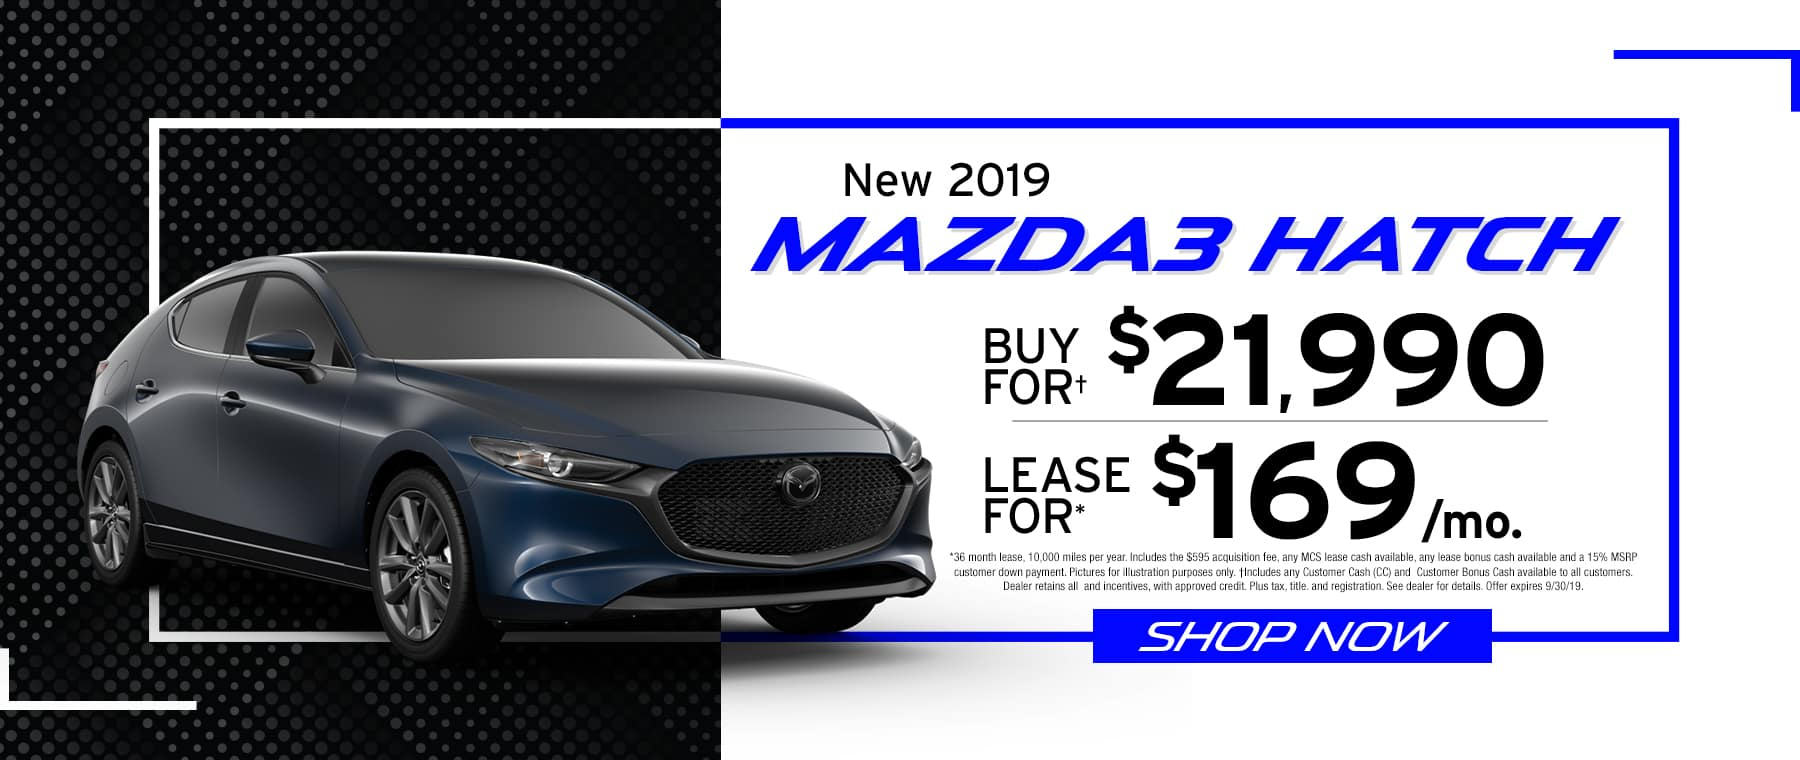 2019 Mazda3 Hatch	$169 Per Month OR Buy For $21990